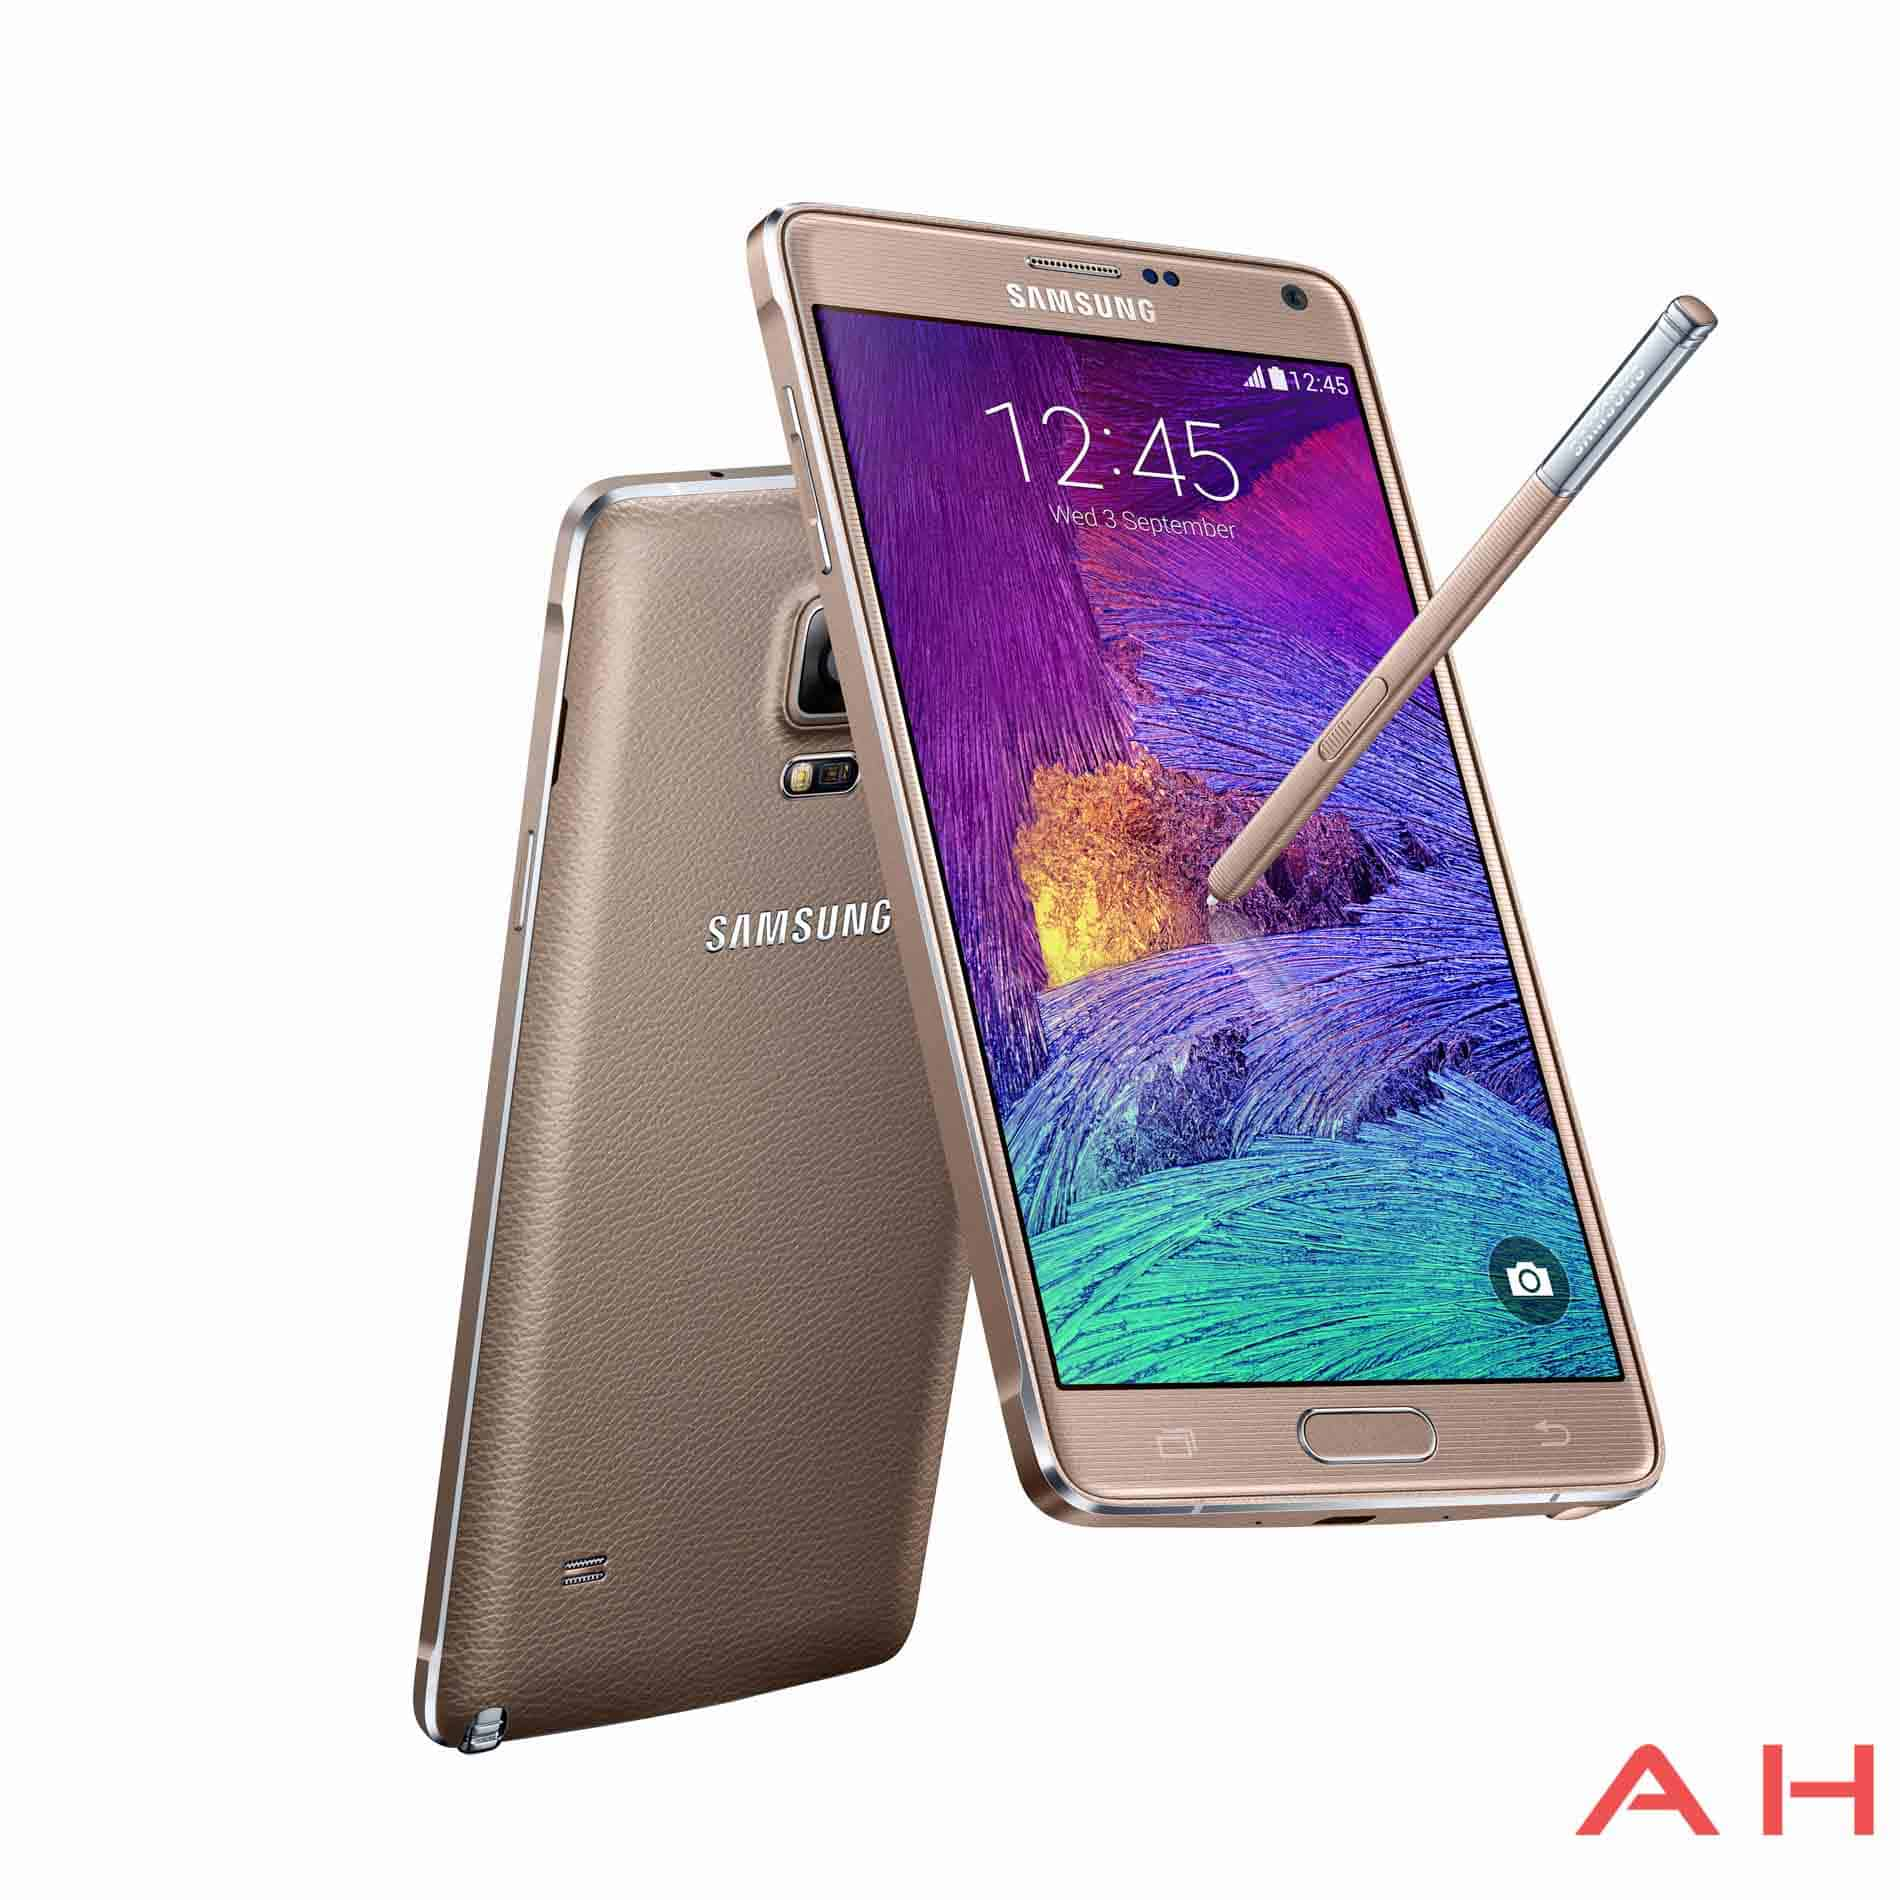 Samsung-Galaxy-Note-4-AH-3